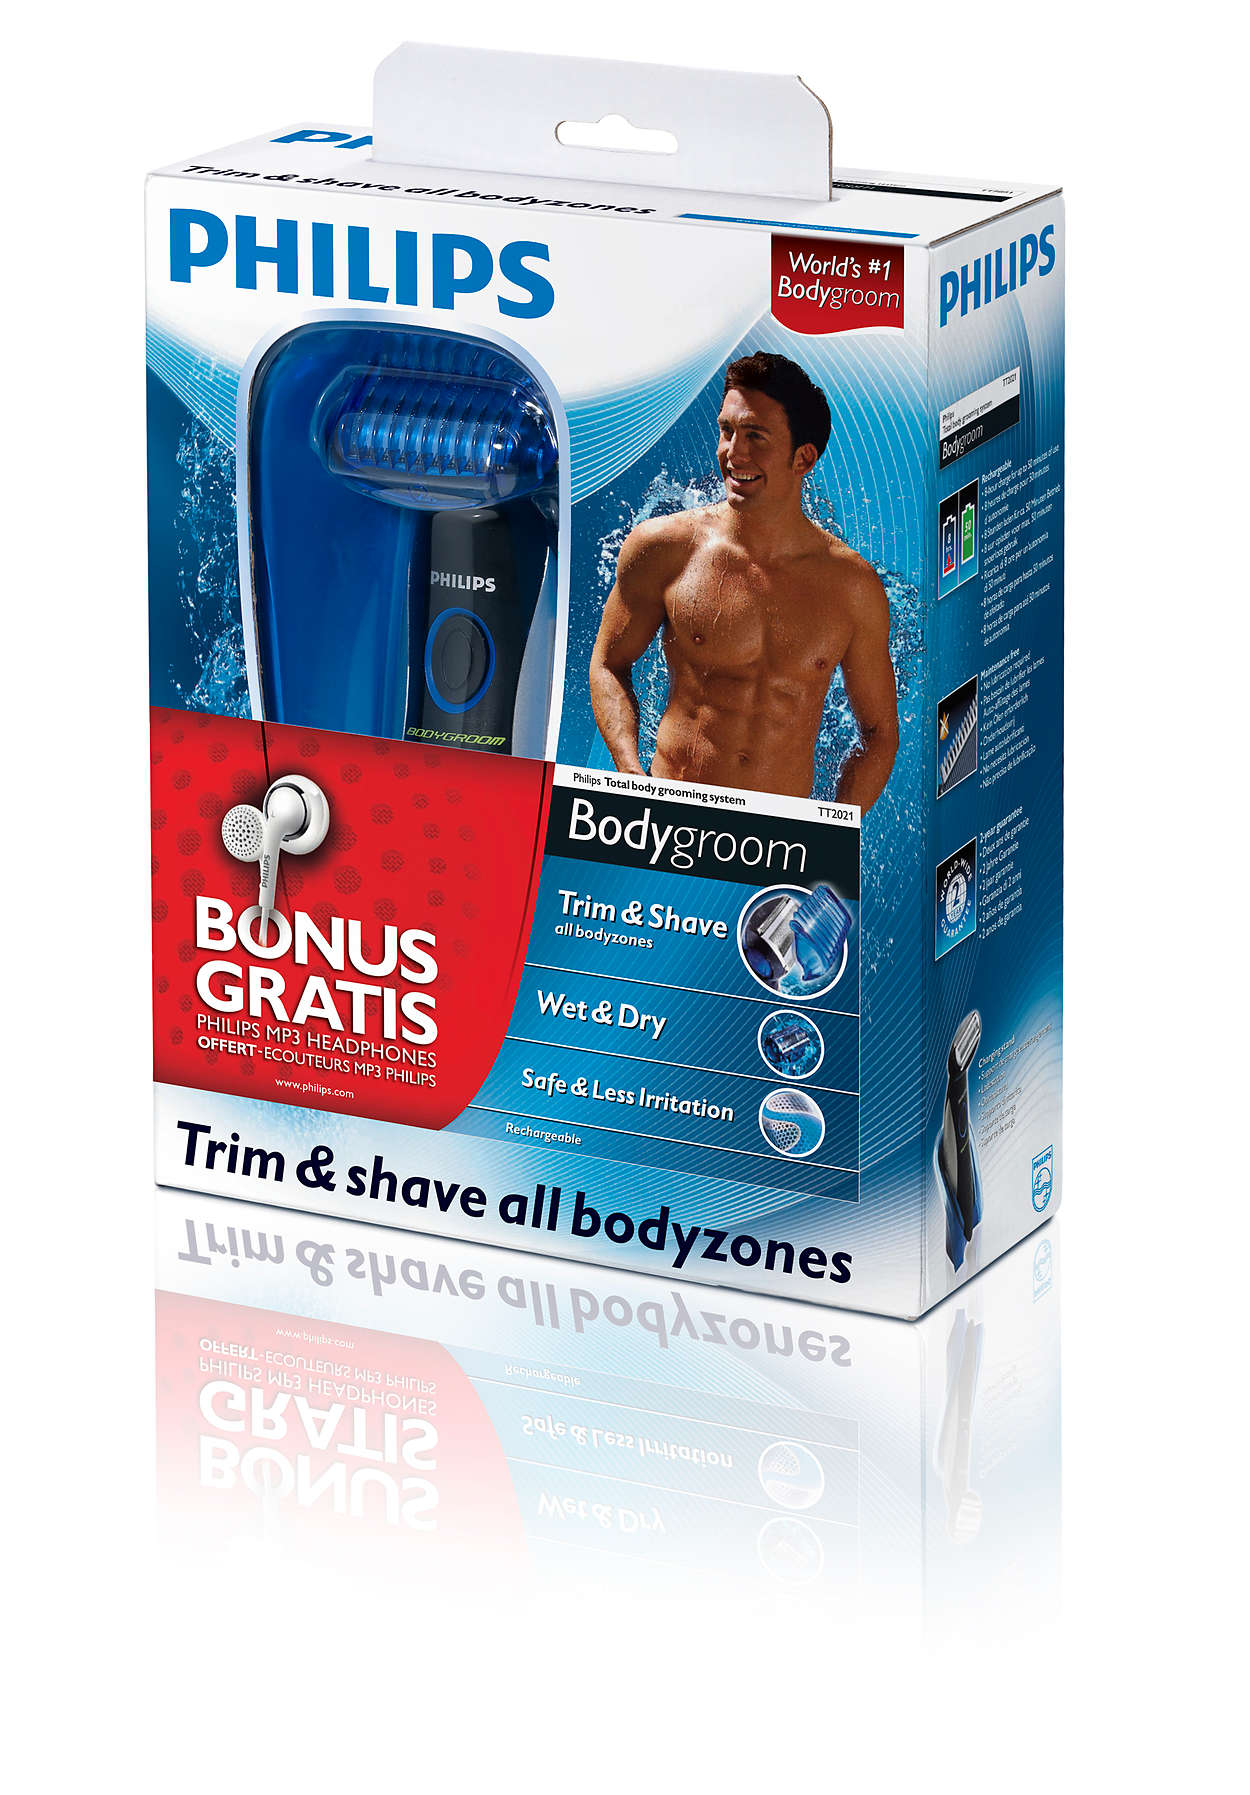 Trim and shave all body zones